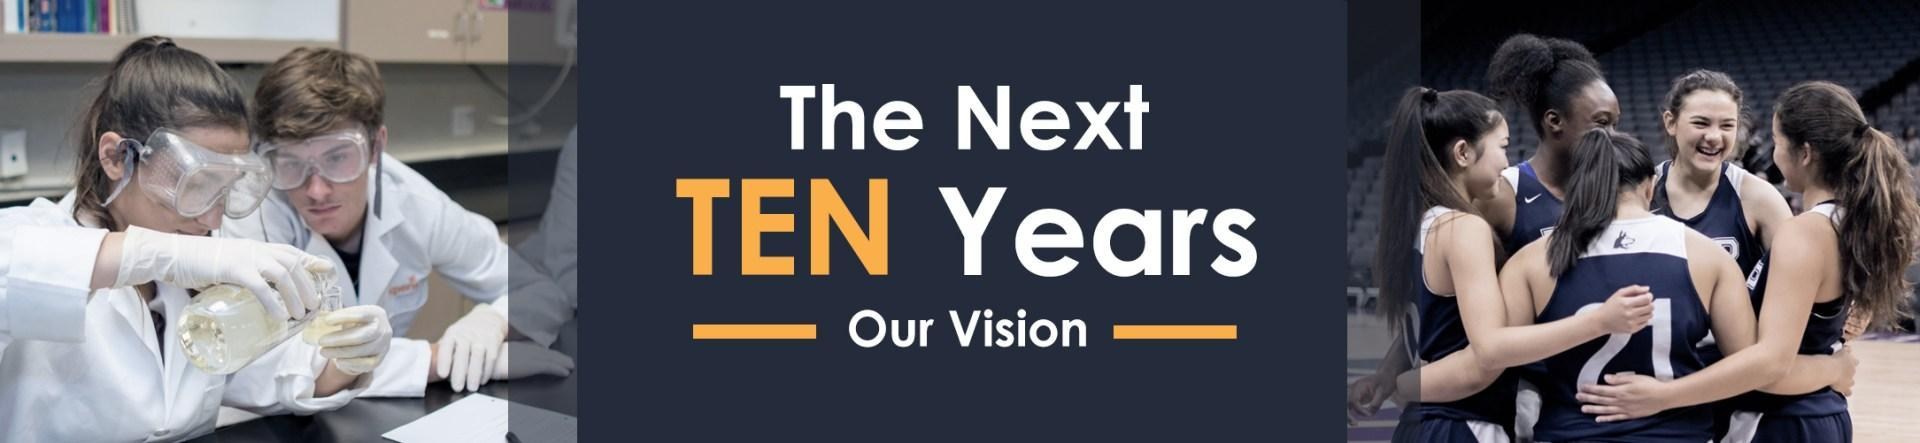 Title Banner: The Next Ten Years - Our Vision